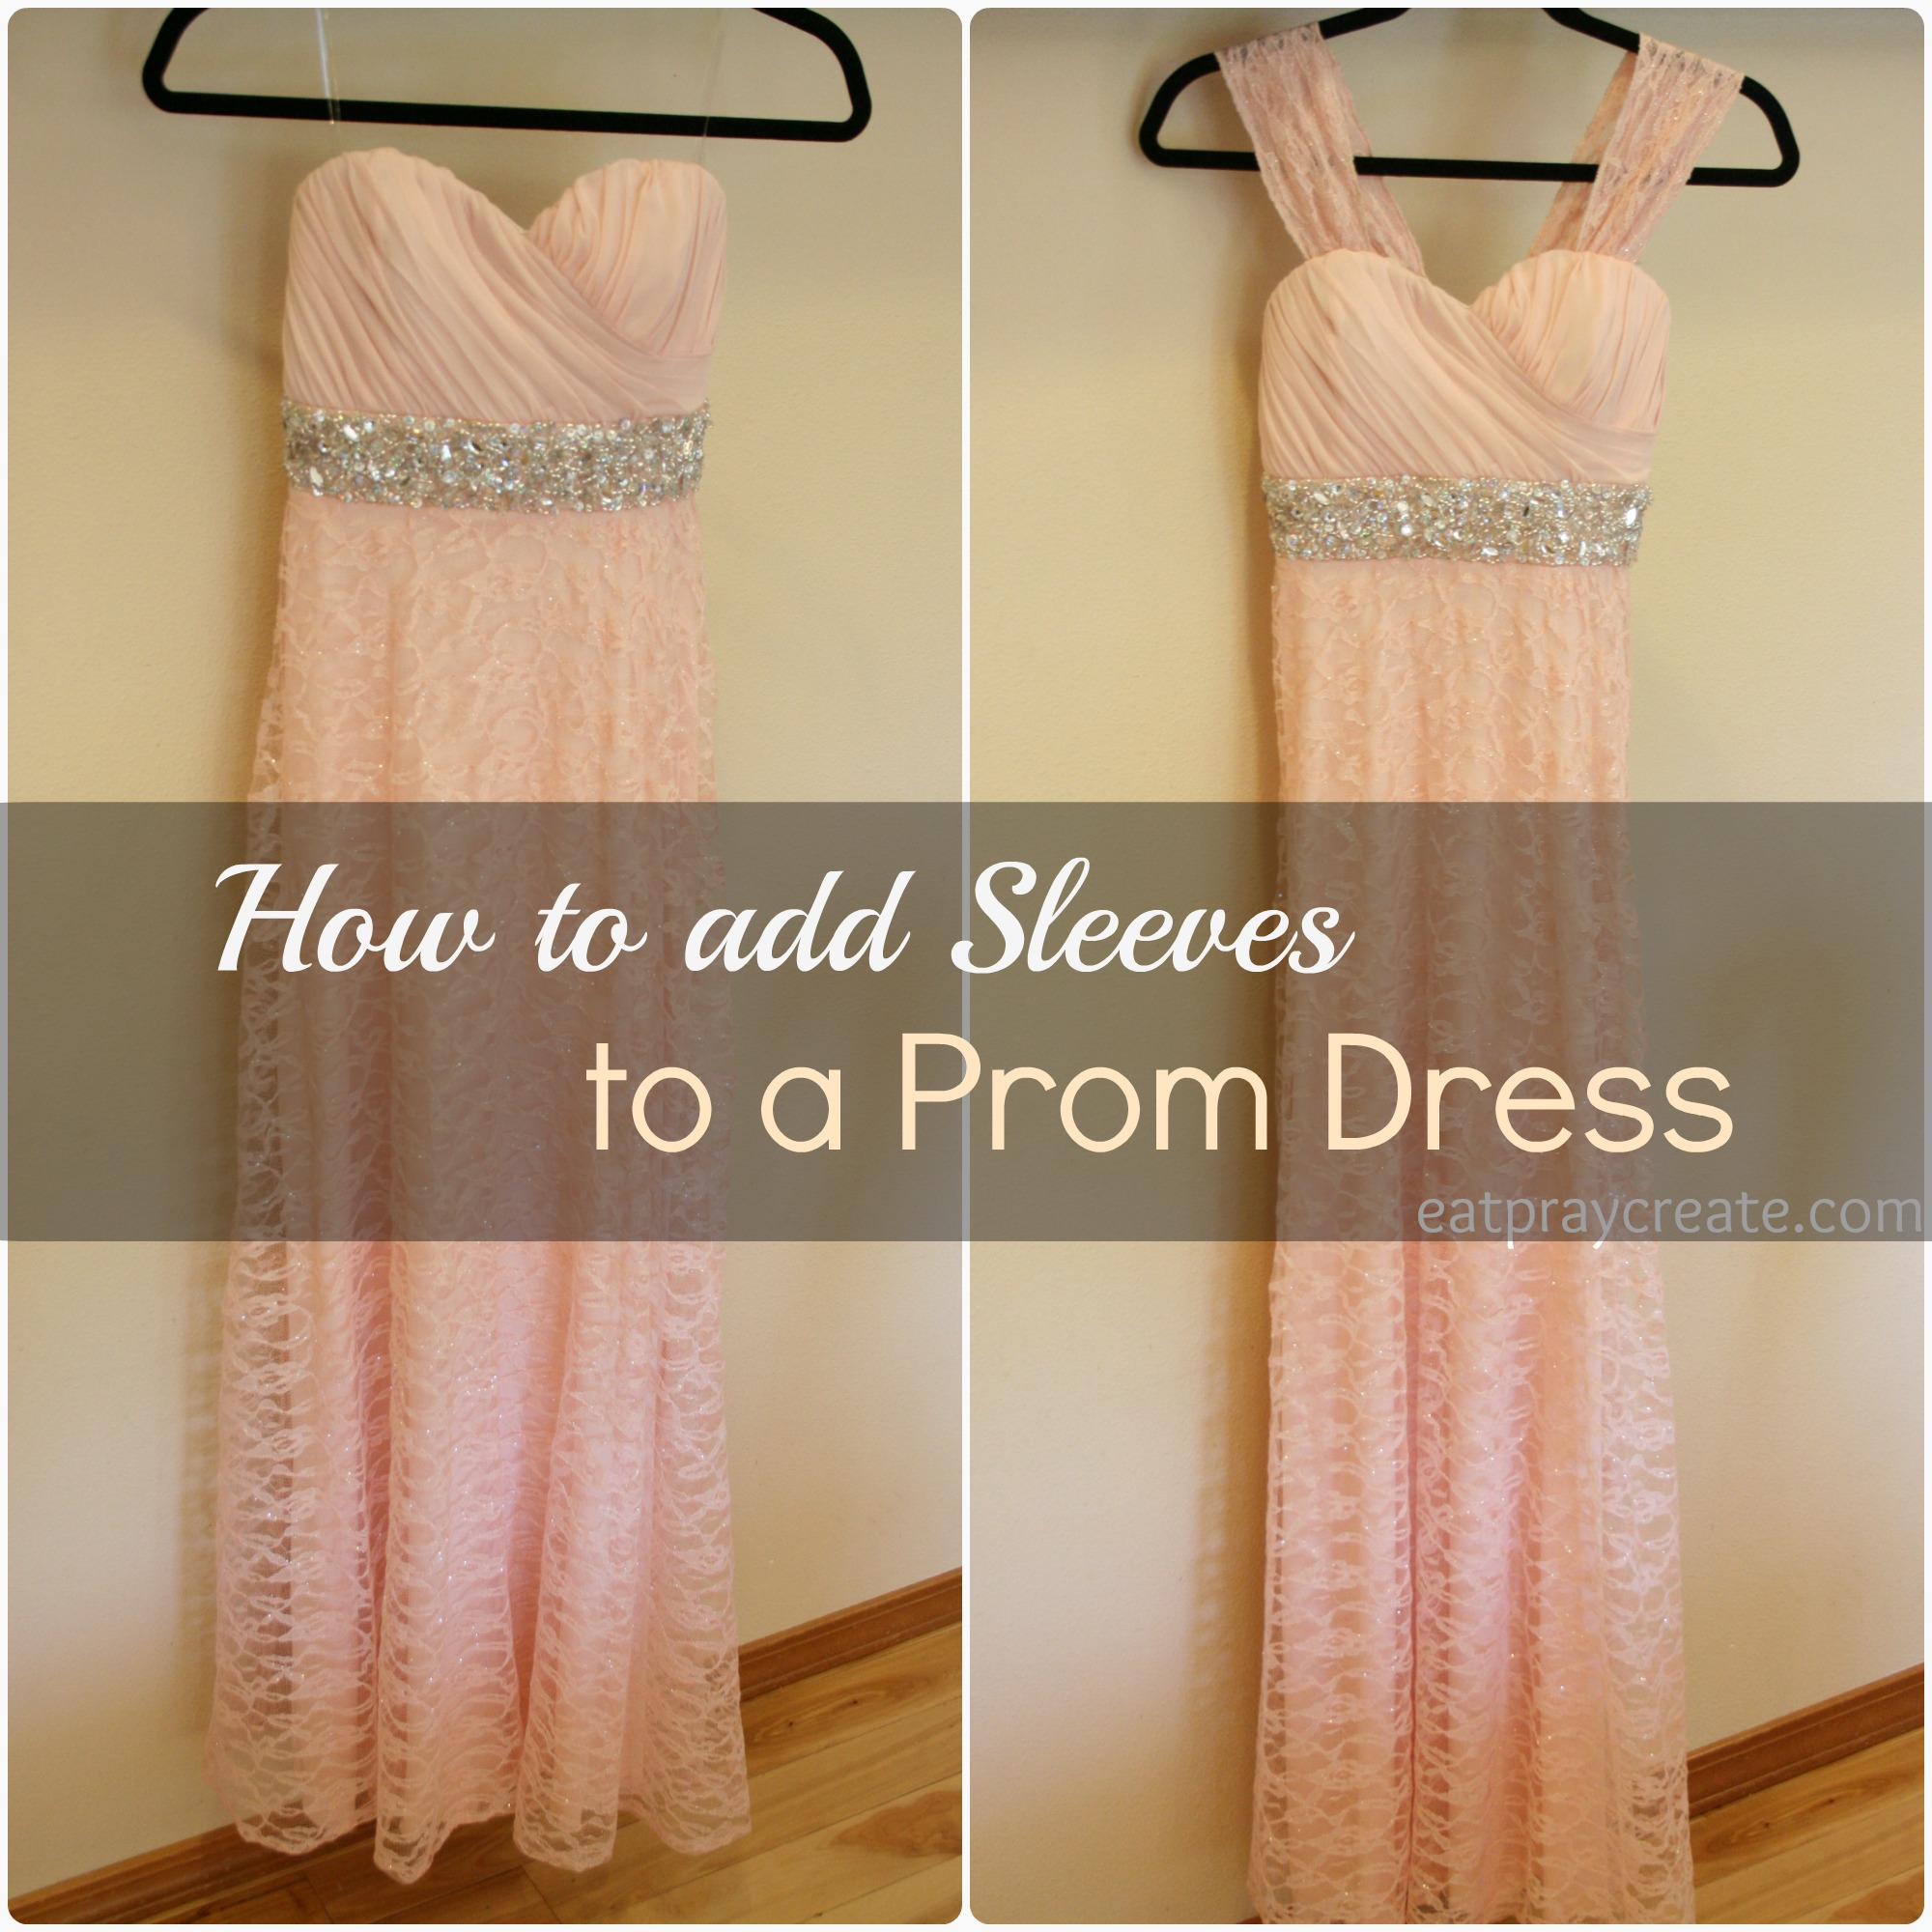 How to Add Sleeves to a Prom Dress - Eat Pray Create